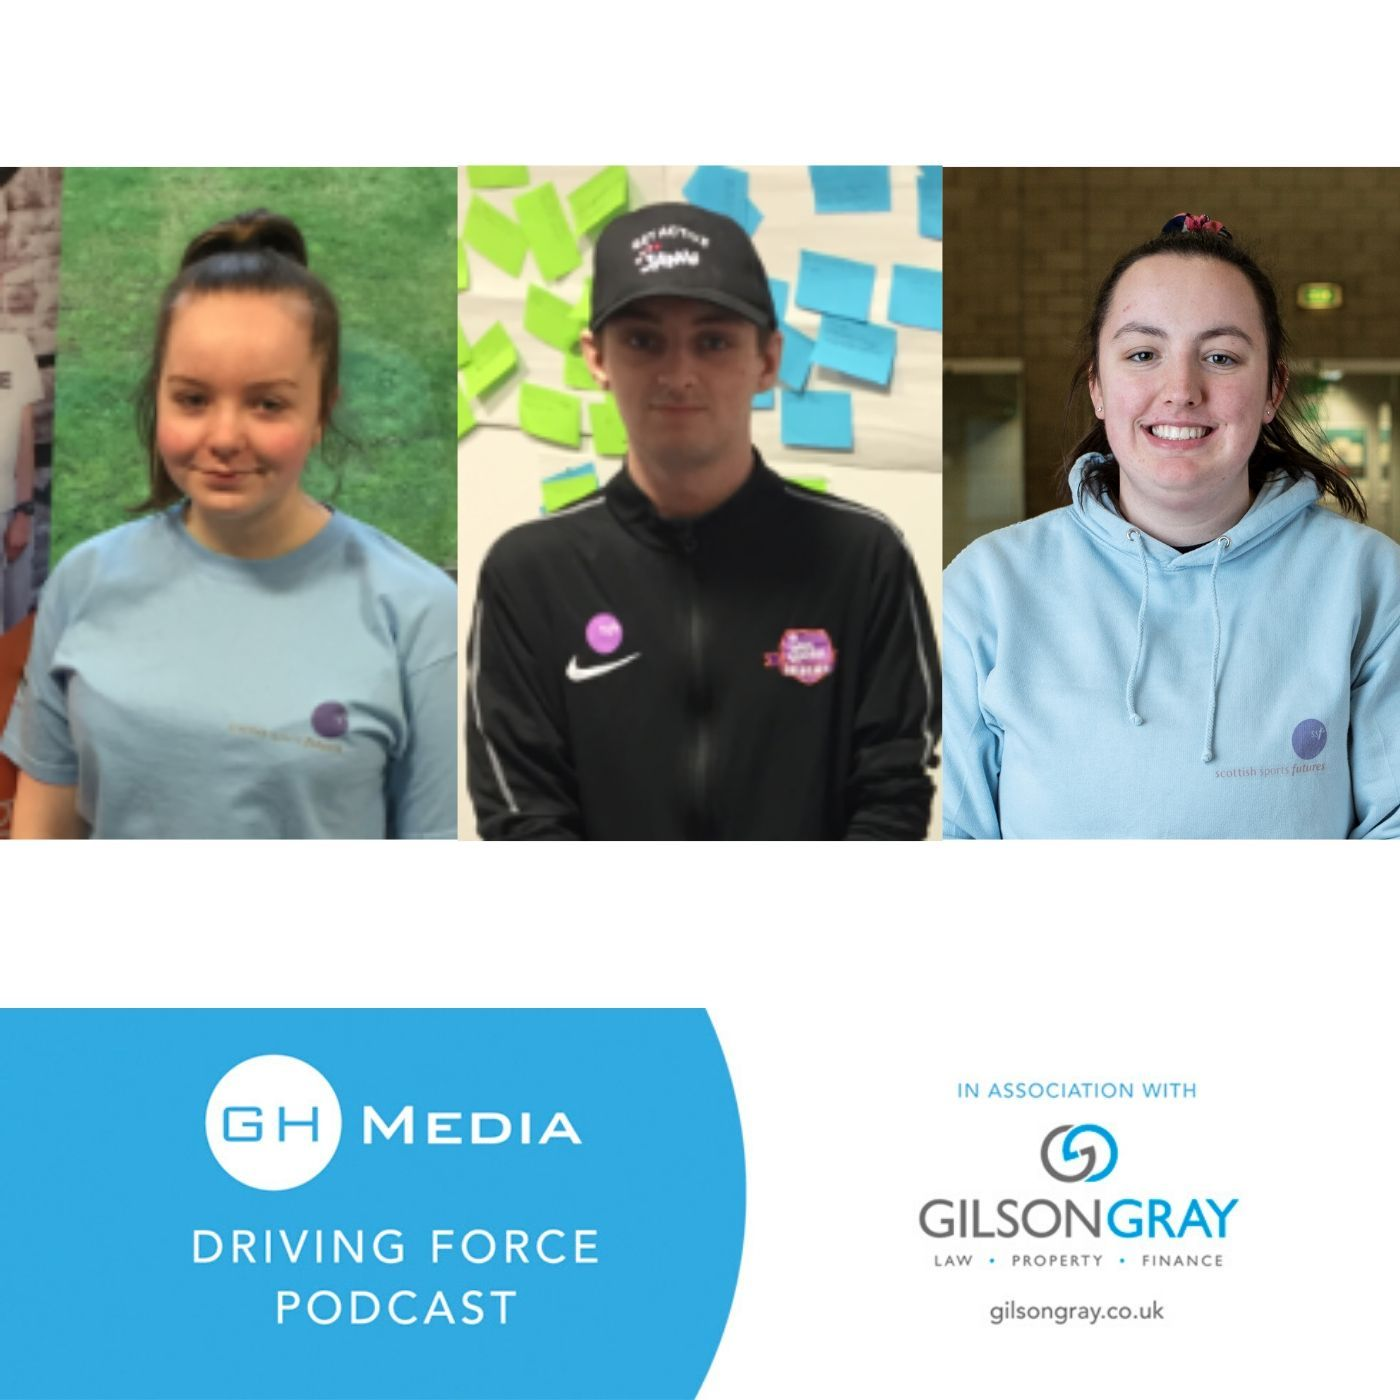 GH Media Driving Force Podcast - Episode 18